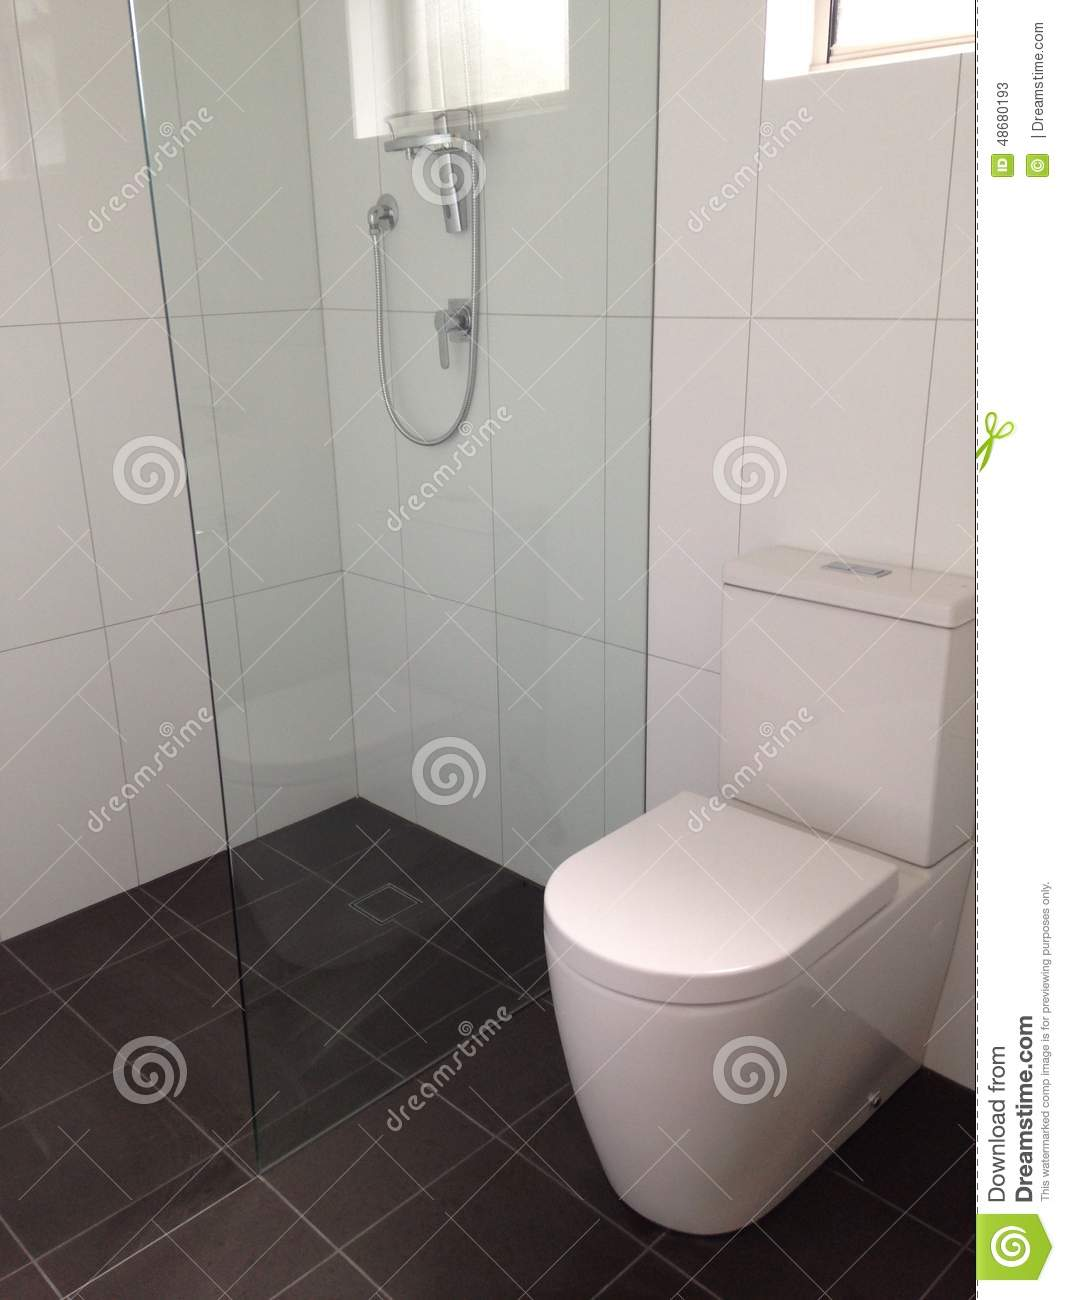 Bathroom stock image. Image of shower, residential, house - 48680193